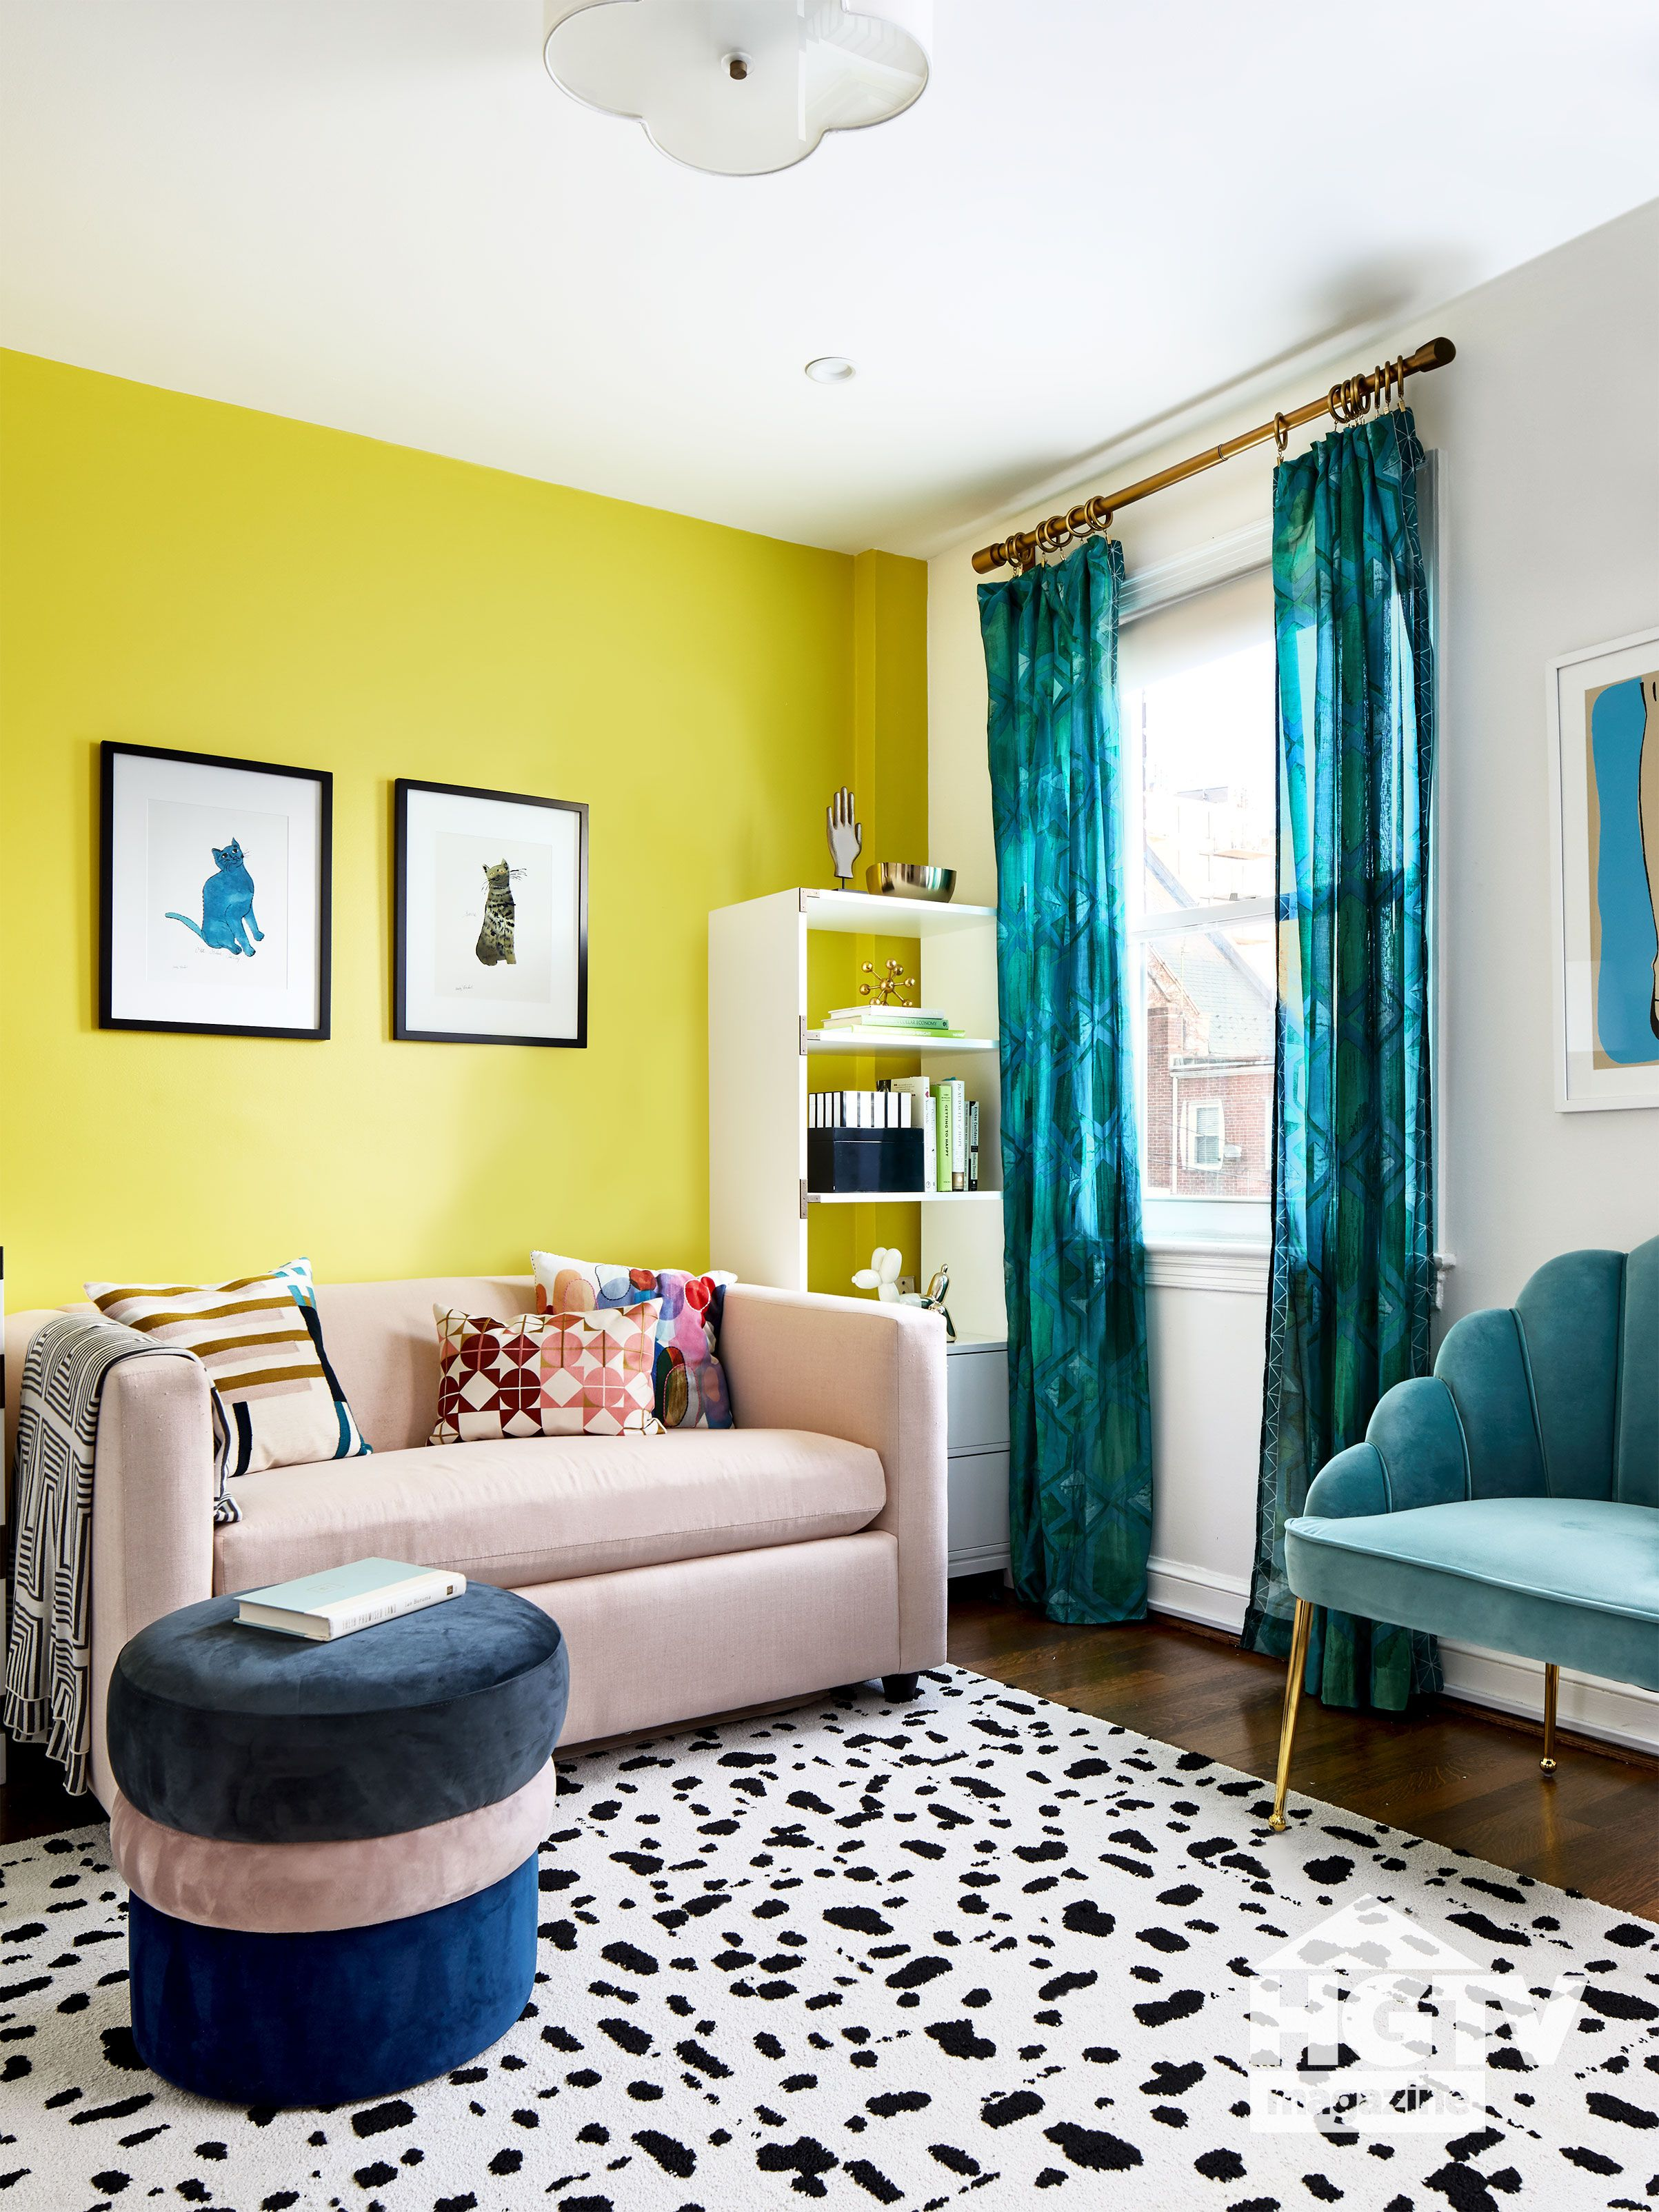 A Bright Yellow Living Room From Hgtv Magazine In 2020 Br